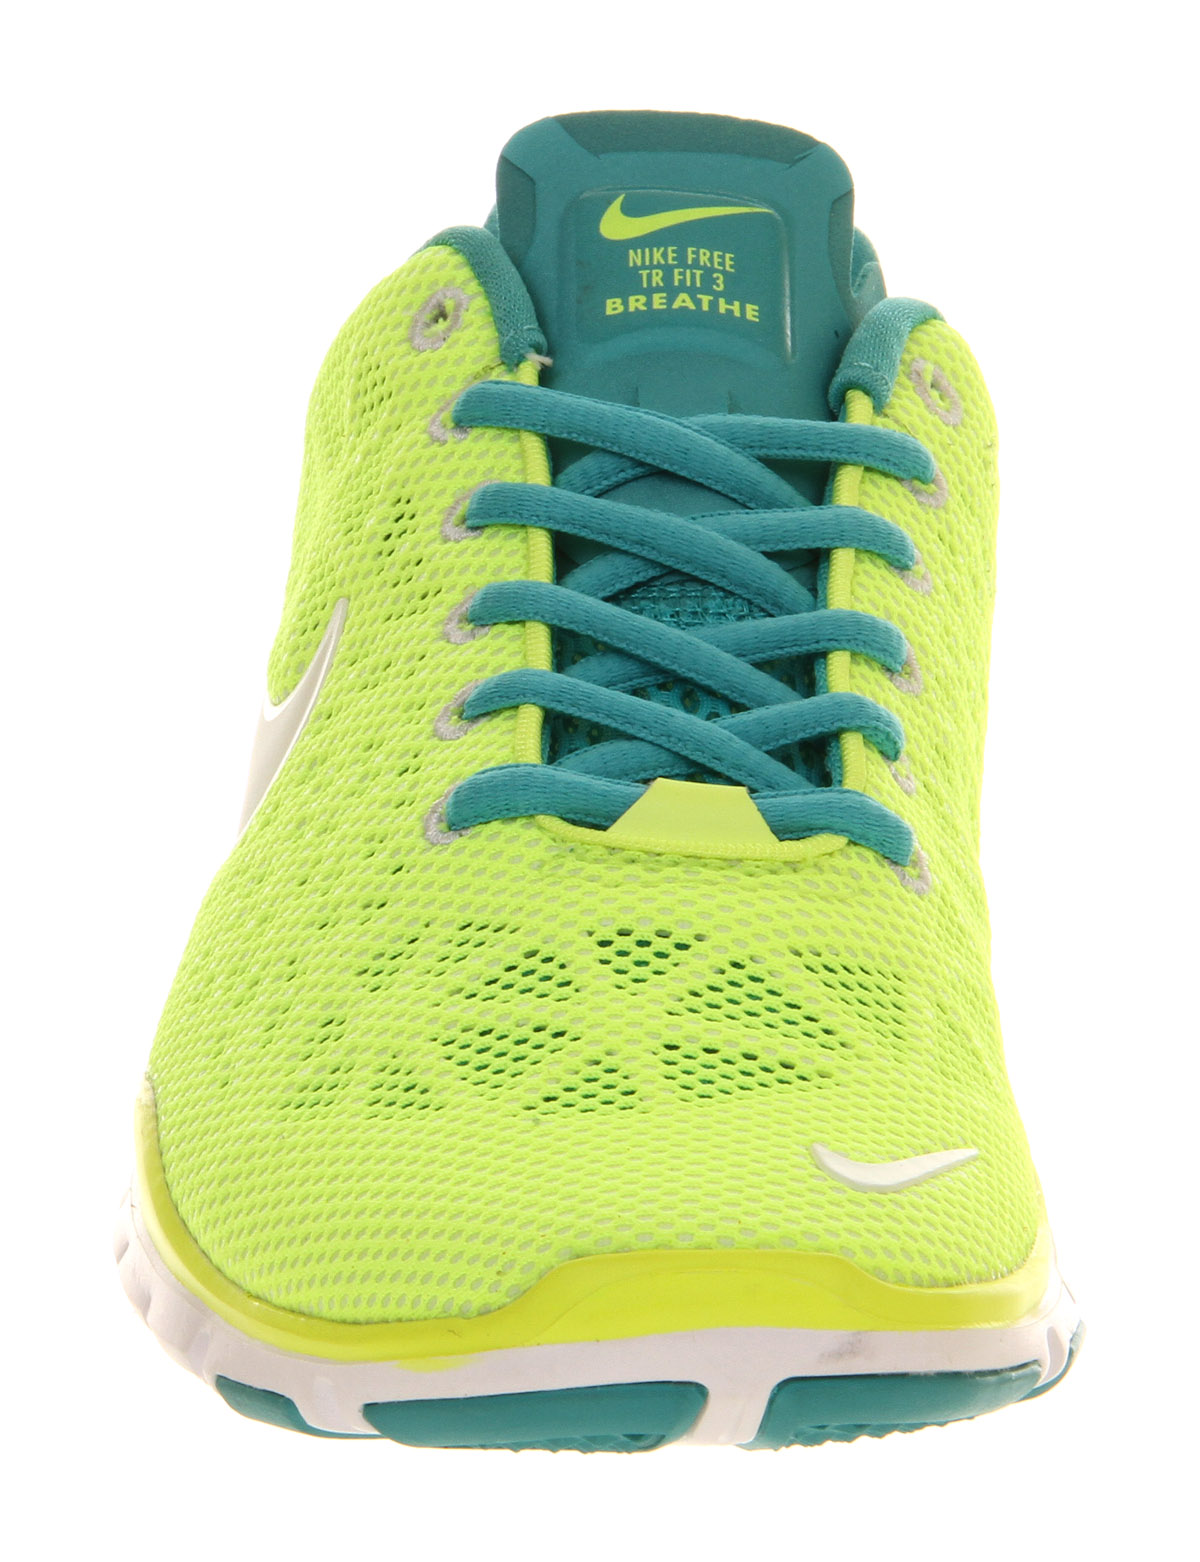 4c51e59600313 Lyst - Nike Free Tr Fit 3 Neon Yellow Volt White Hypercool in Yellow